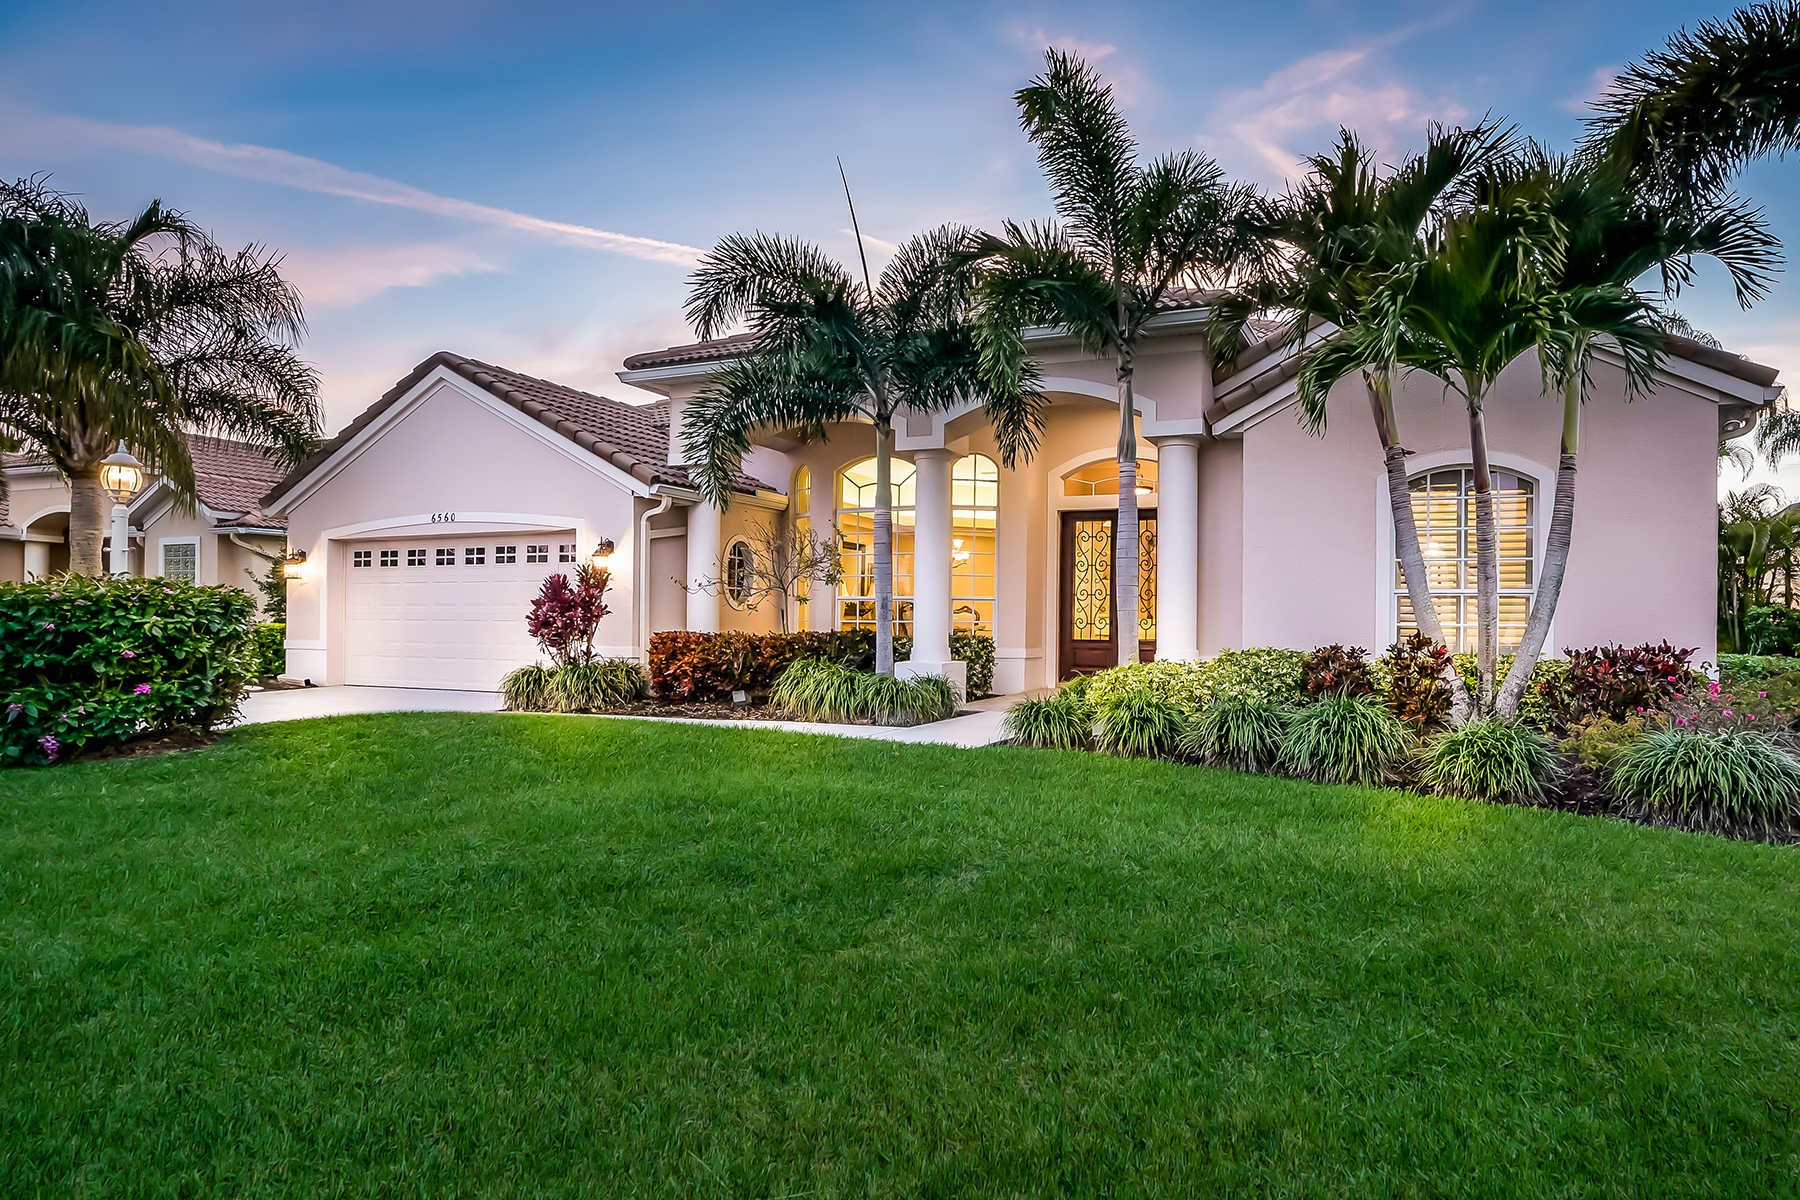 Single Family Home for Sale at LAKEWOOD RANCH COUNTRY CLUB 6560 The Masters Ave, Lakewood Ranch, Florida 34202 United States